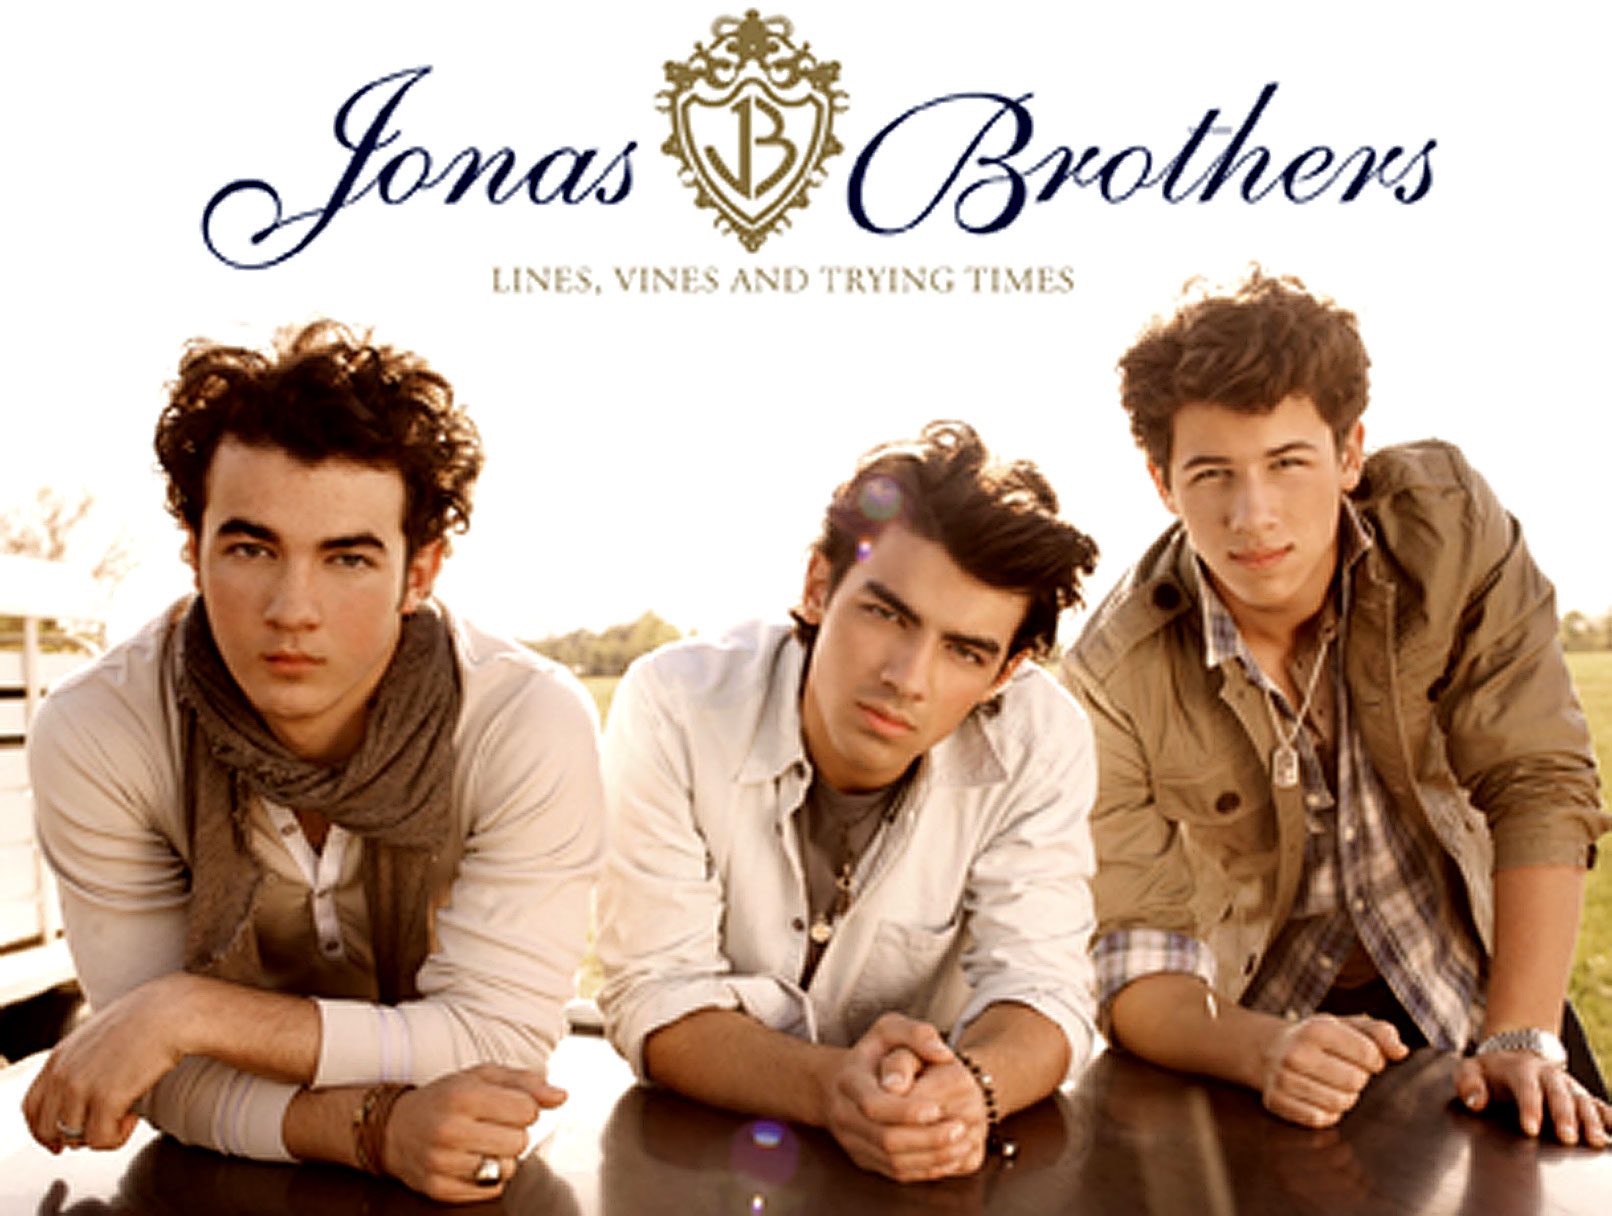 Behold, the Jonas Brothers' New Album Cover!